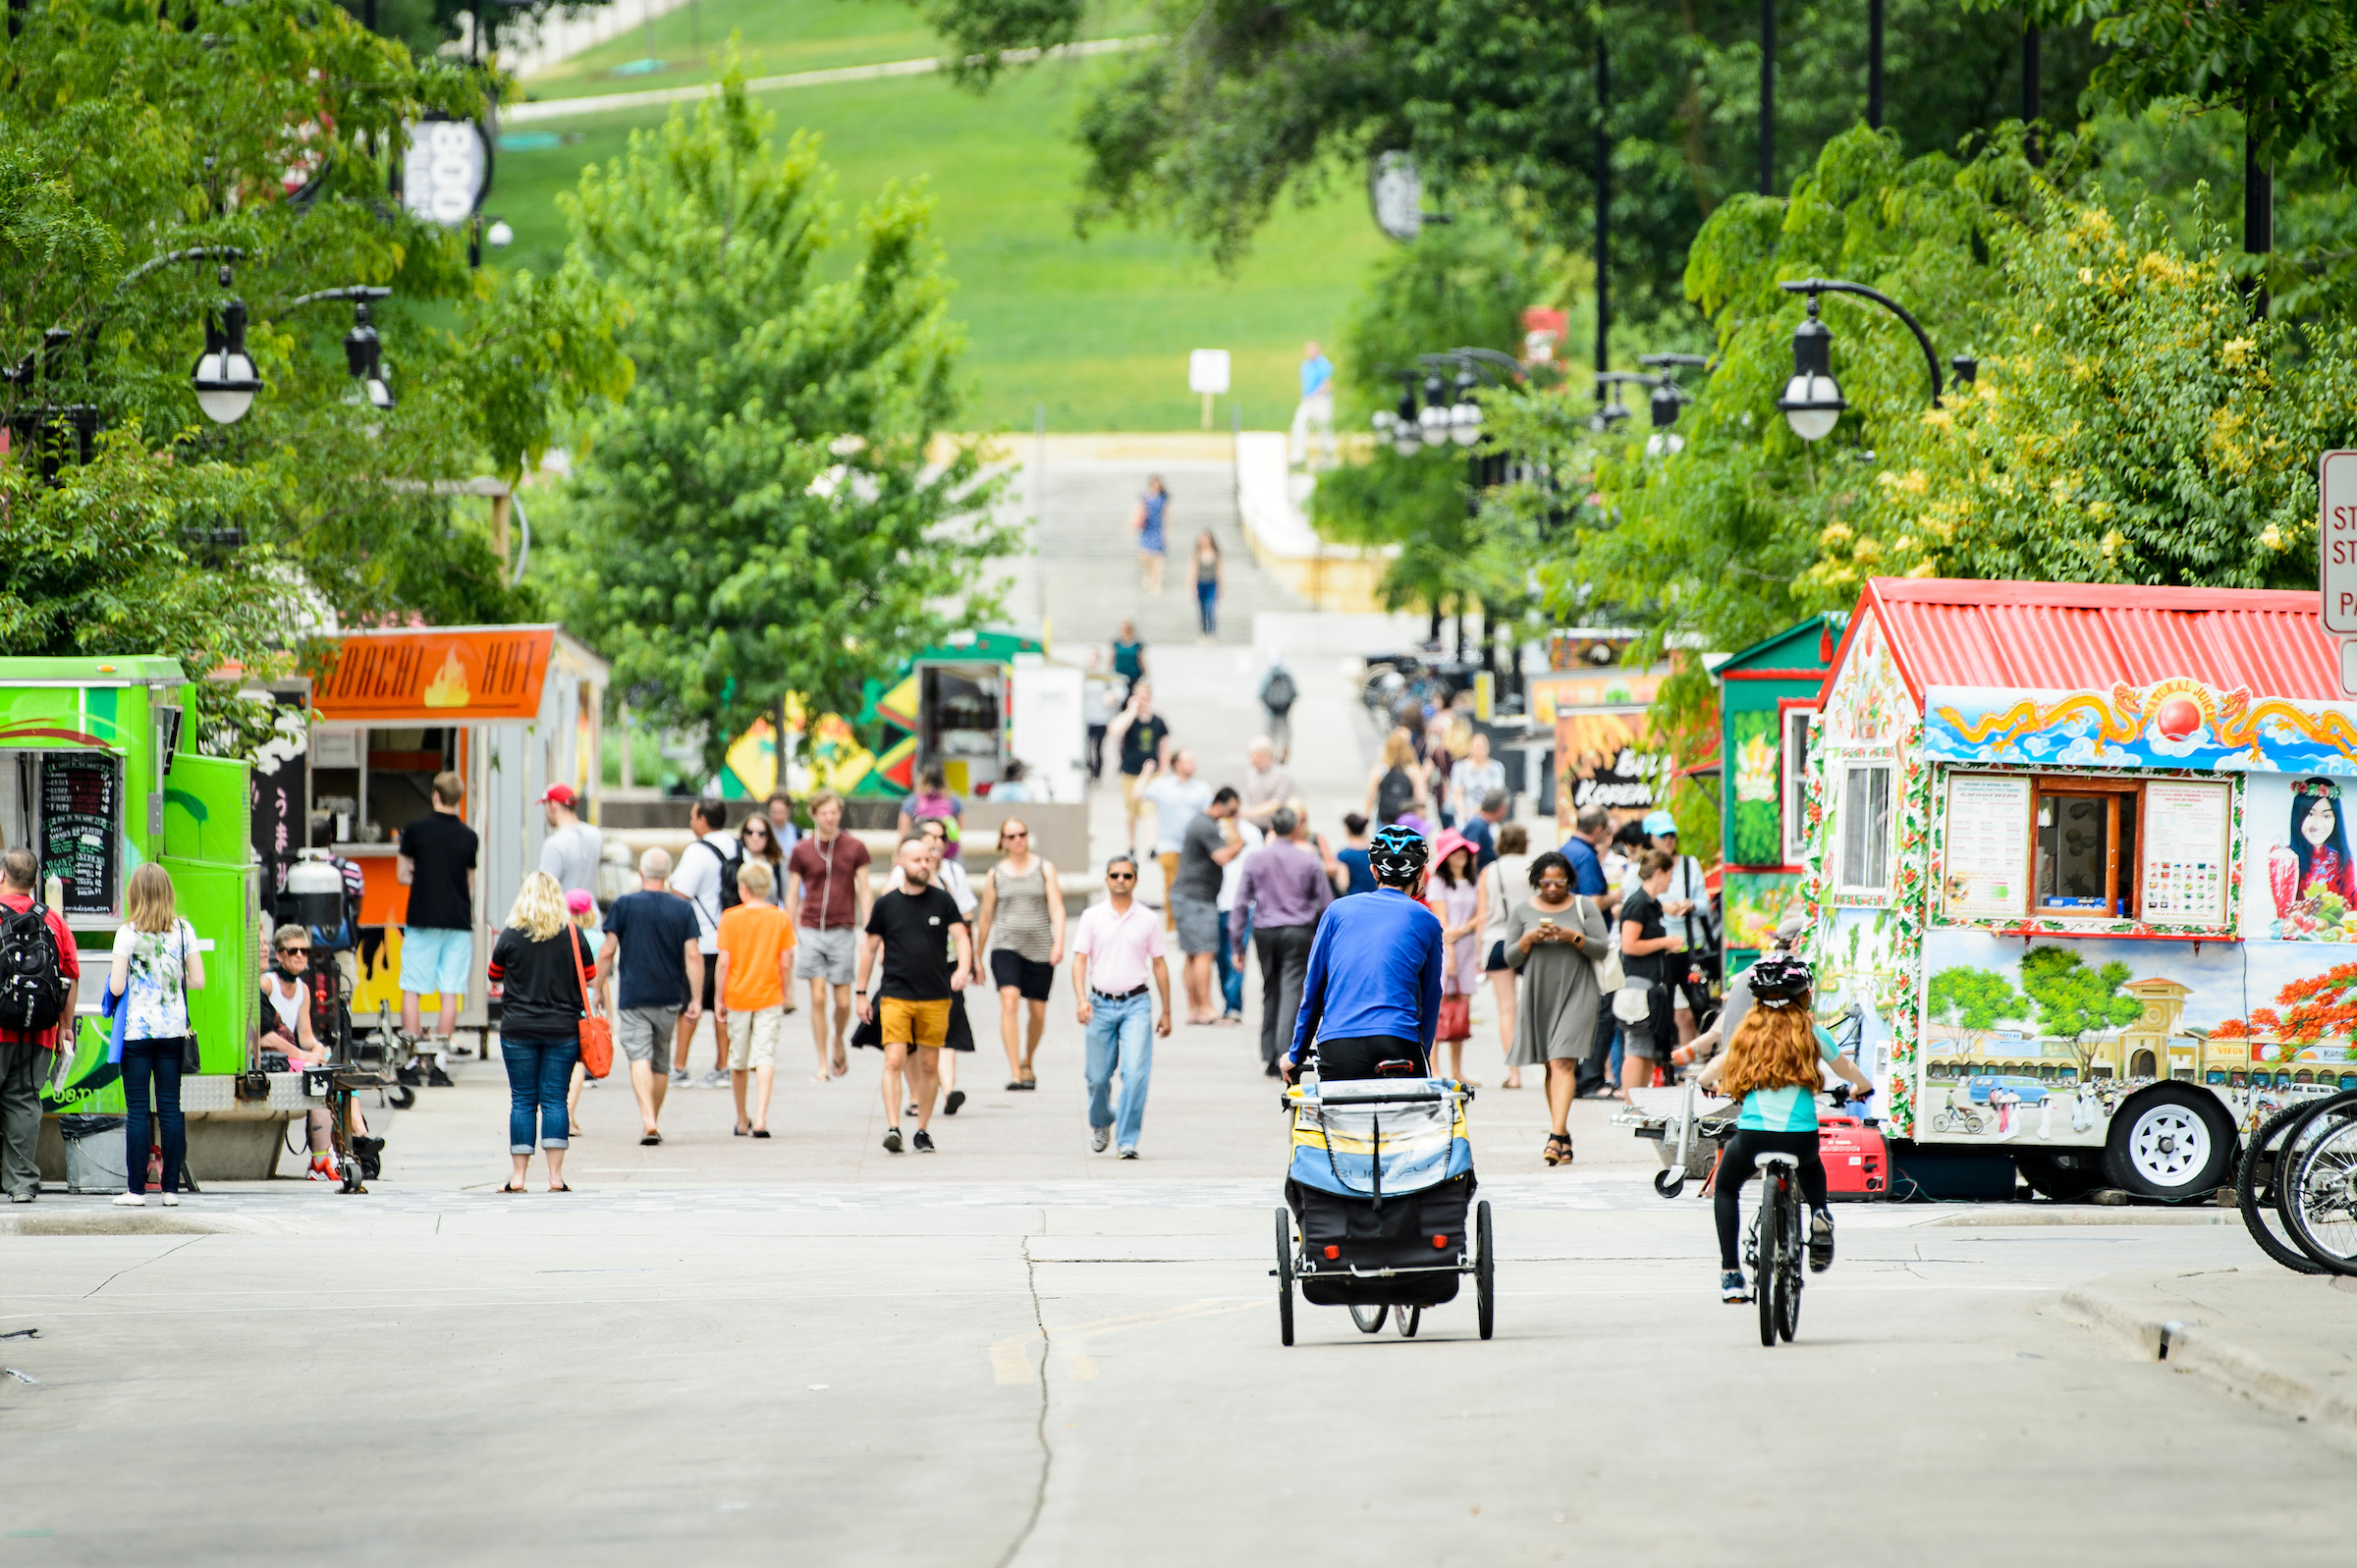 Pedestrians and lunchtime patrons walk amongst the food carts on Library Mall at the University of Wisconsin-Madison on June 13, 2017. (Photo by Bryce Richter / UW-Madison)